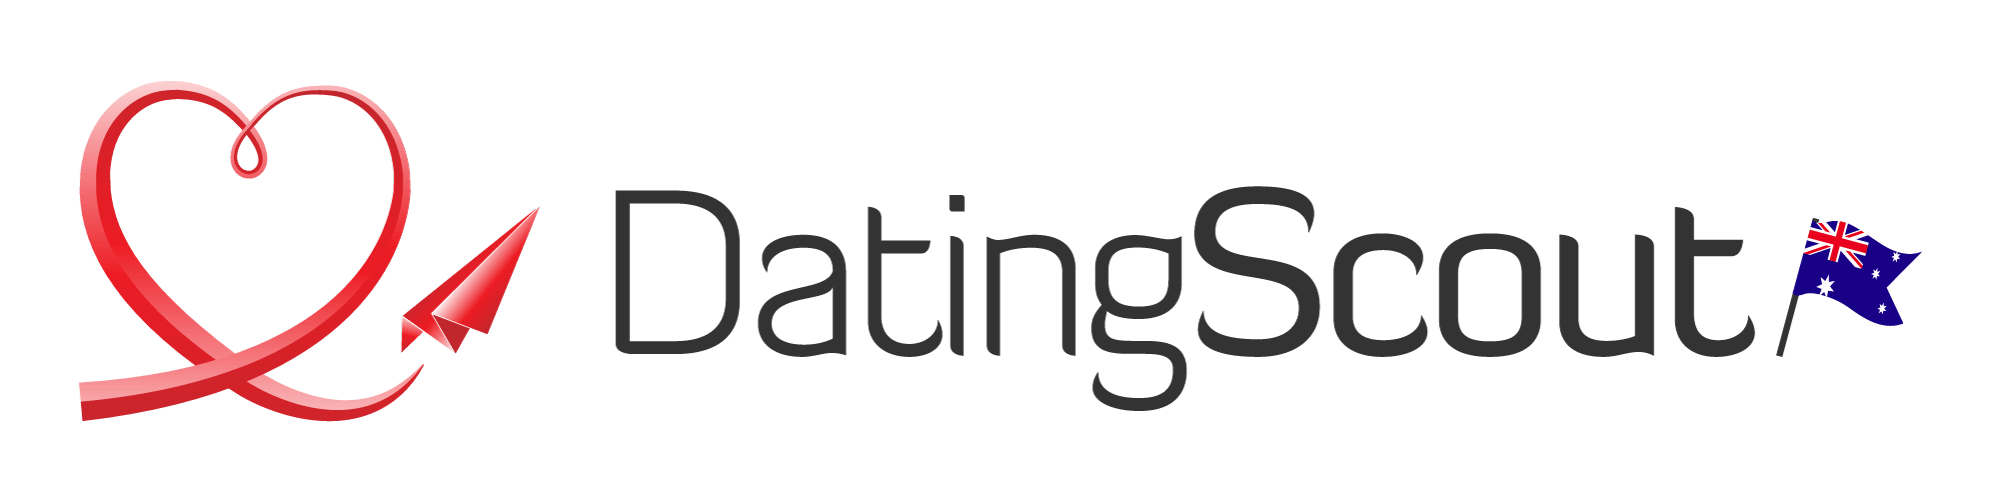 Datingscout.com.au Logo